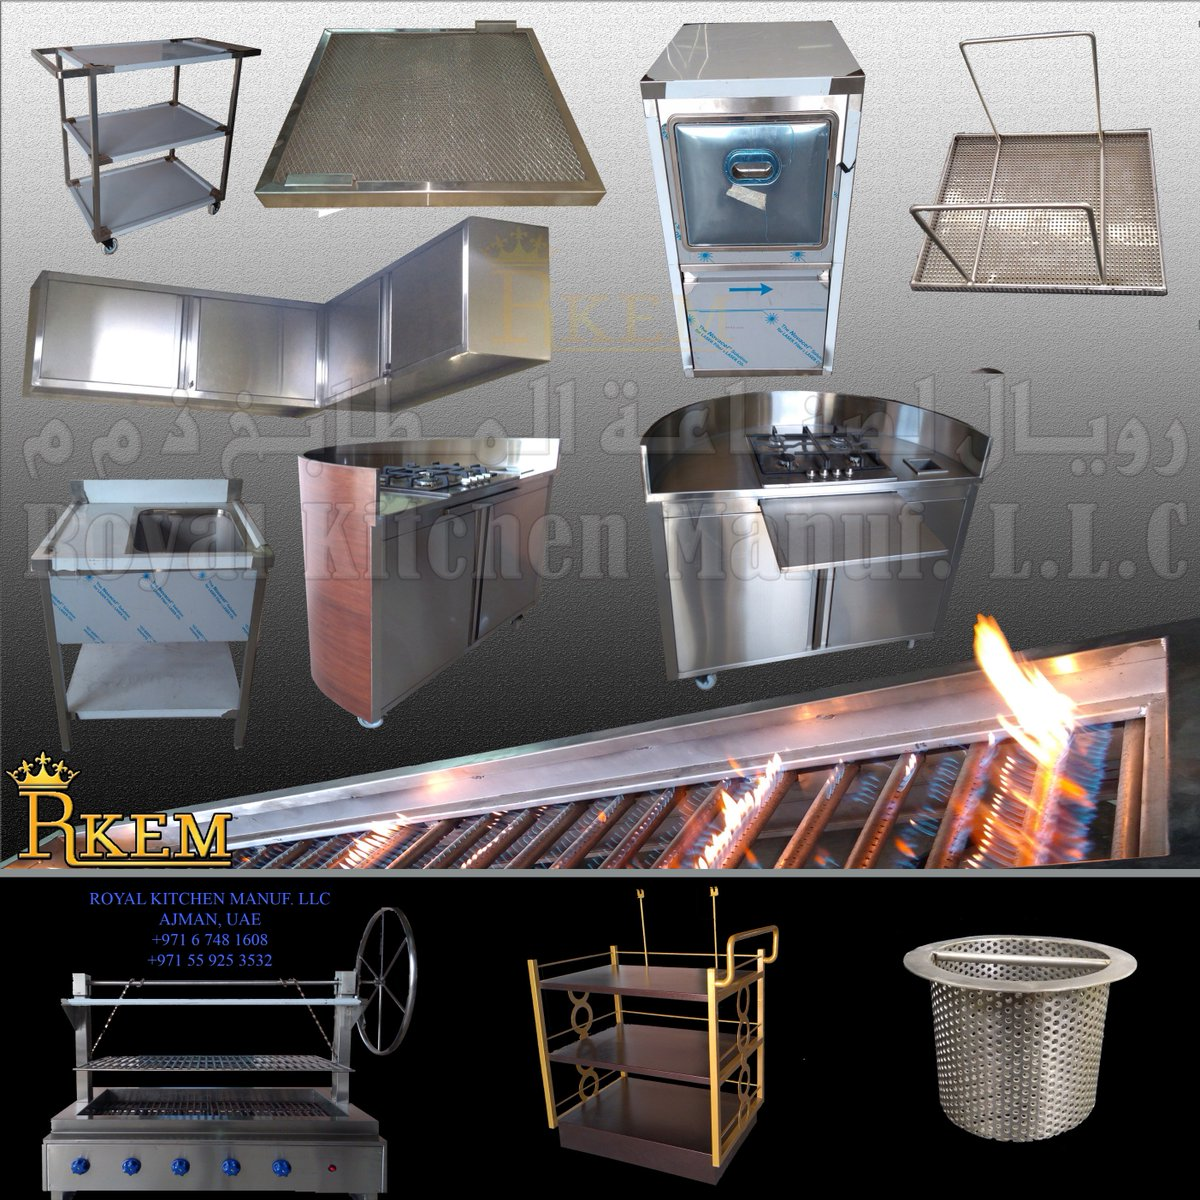 Welcome To Our World Of Customized Kitchen Equipment. Royal Kitchen  Equipment Manufacturing LLC Are Specialized Manufactures And Exporters Of  Commercial, ...